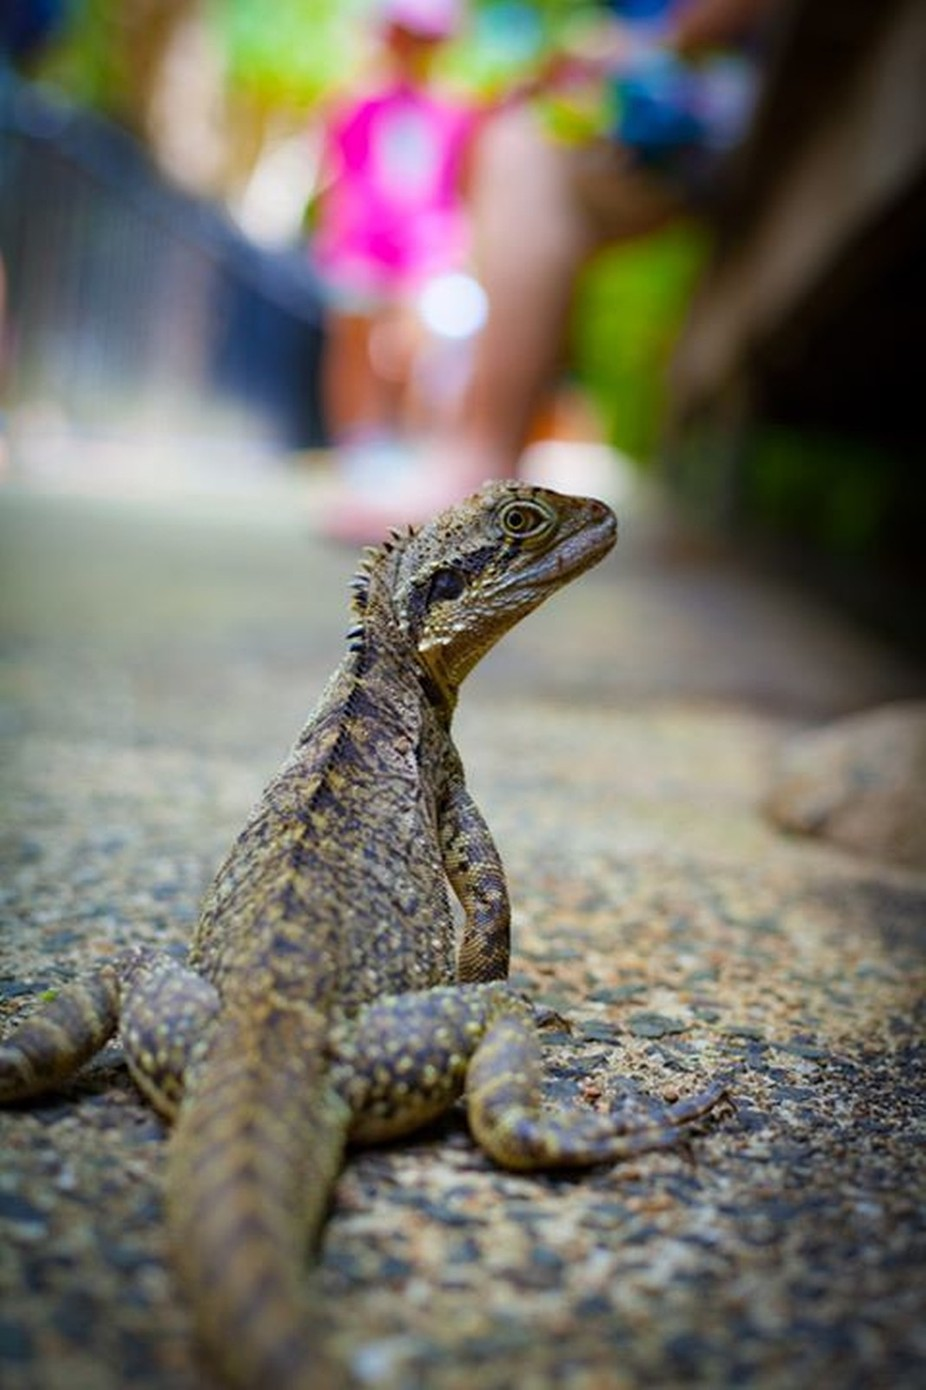 IMG_7201Brisbane, Cooly & Byron Bay.jpg by miguelgaly - Reptiles Photo Contest